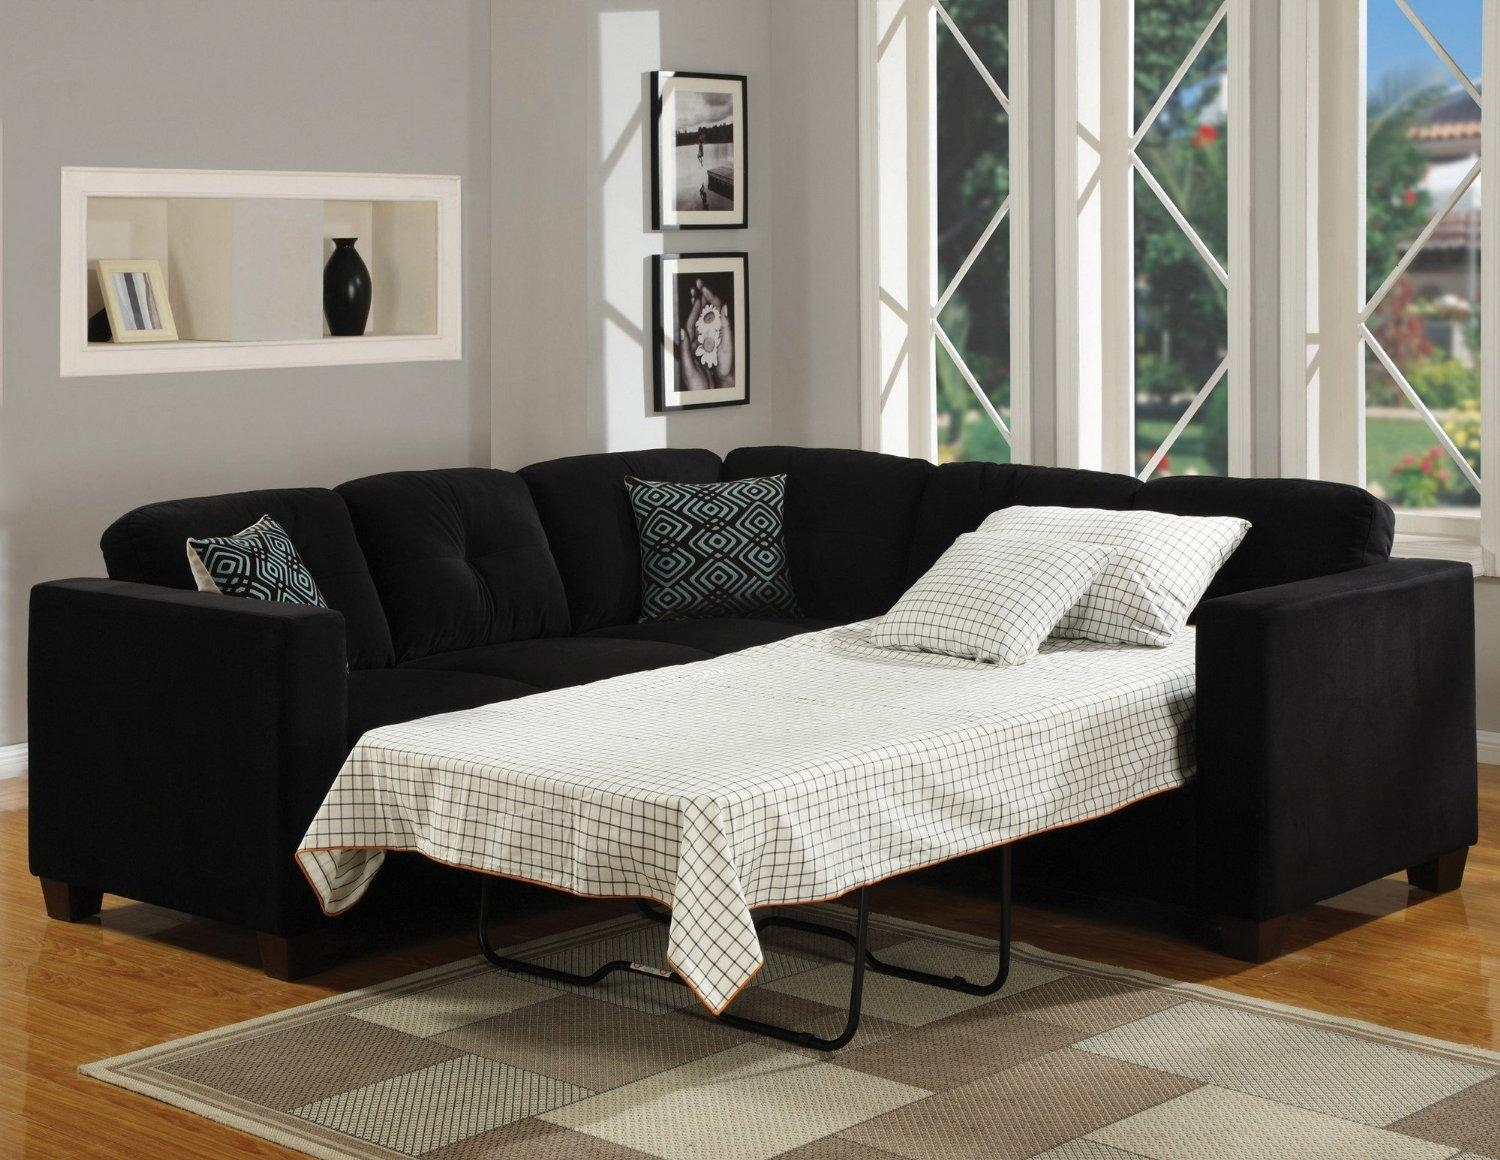 Sleeper Sectional Sofa For Small Spaces — Interior Exterior Homie With Sectional Small Spaces (Image 15 of 20)